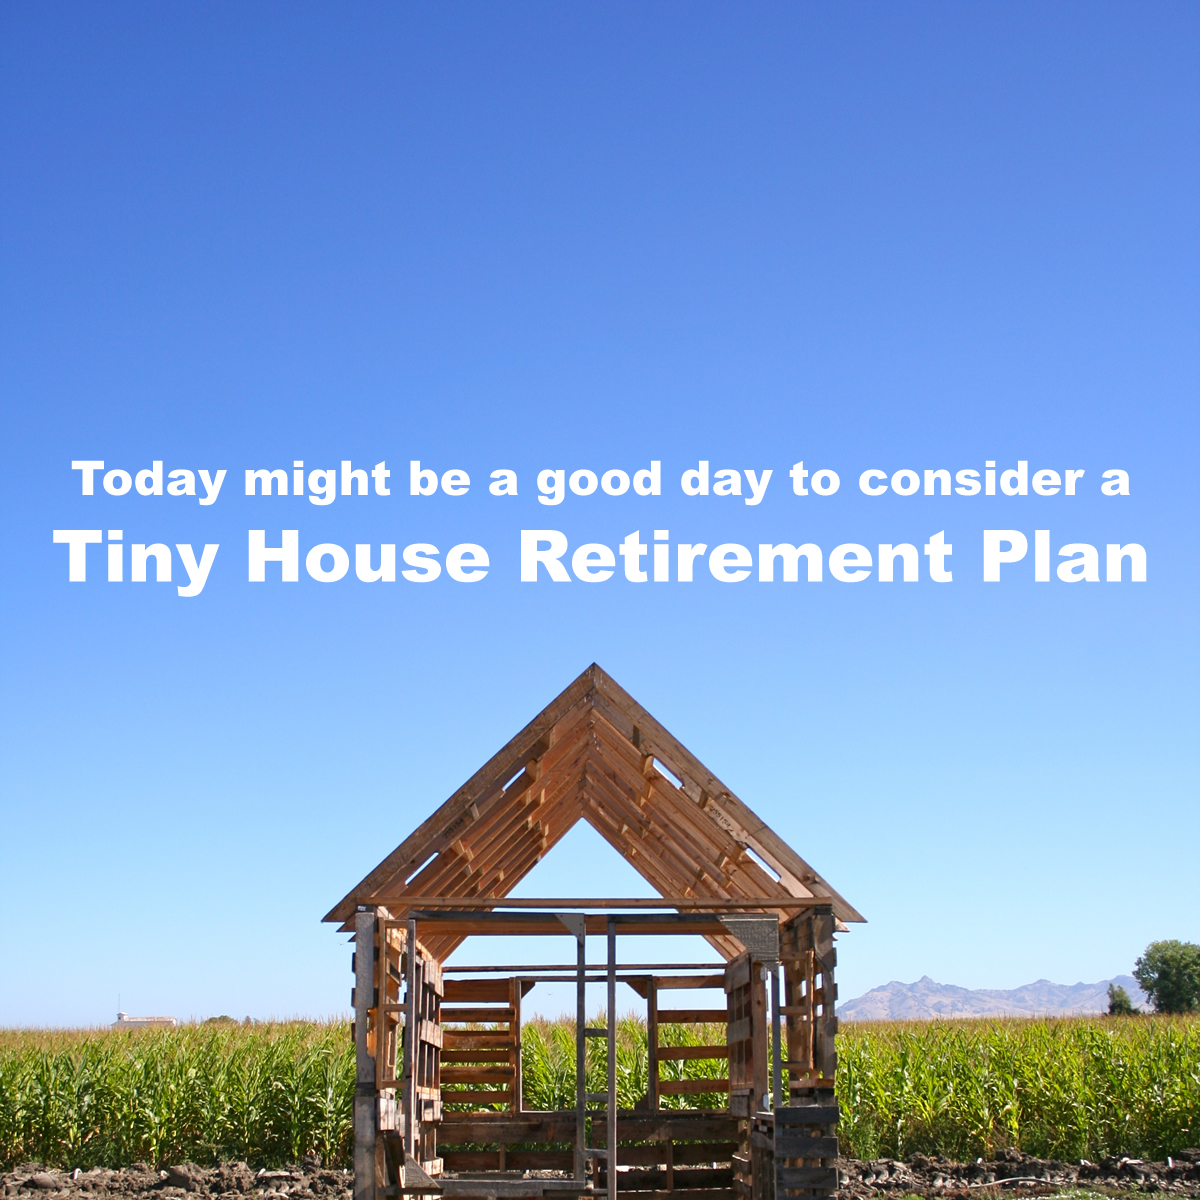 Revisiting a Tiny House Retirement Plan